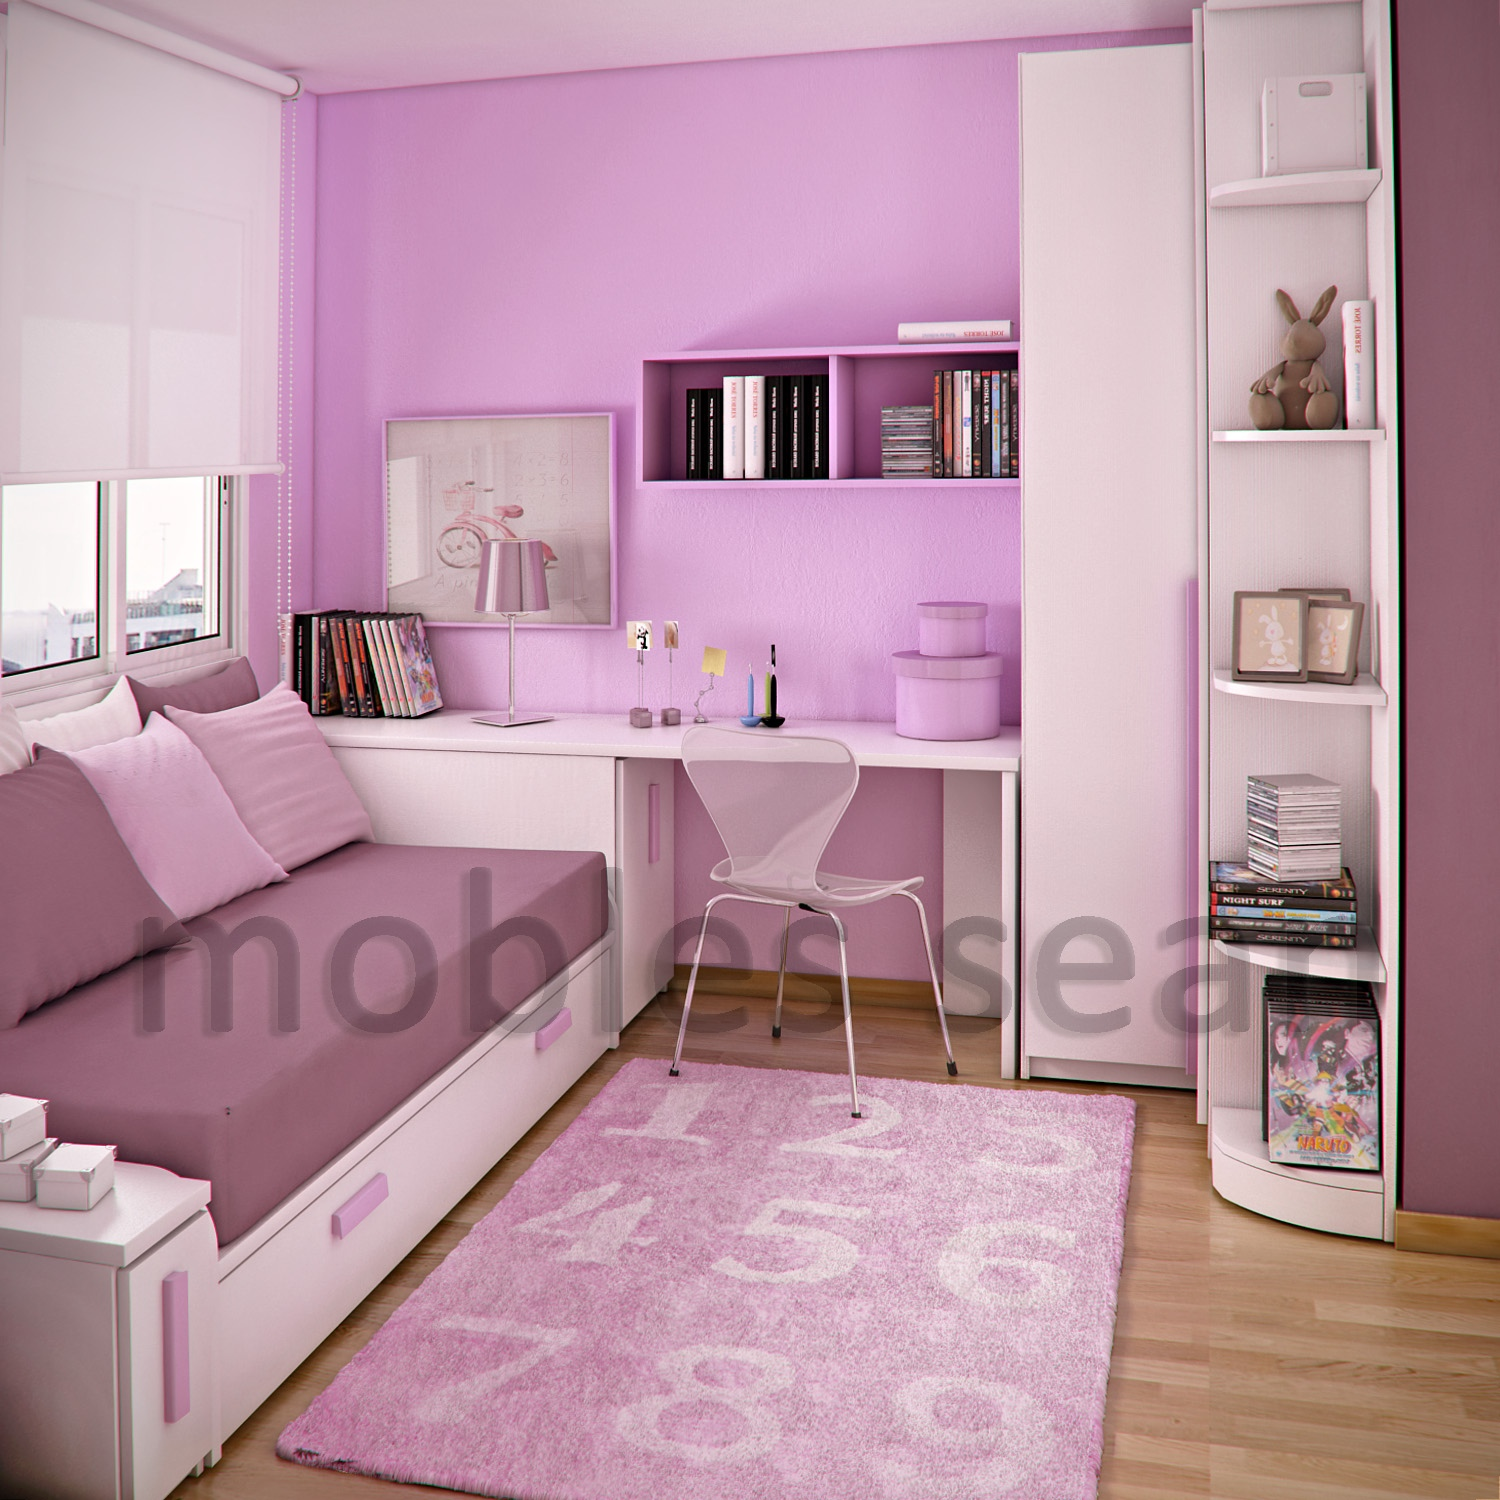 Bedroom Designs Small Spaces space-saving designs for small kids rooms